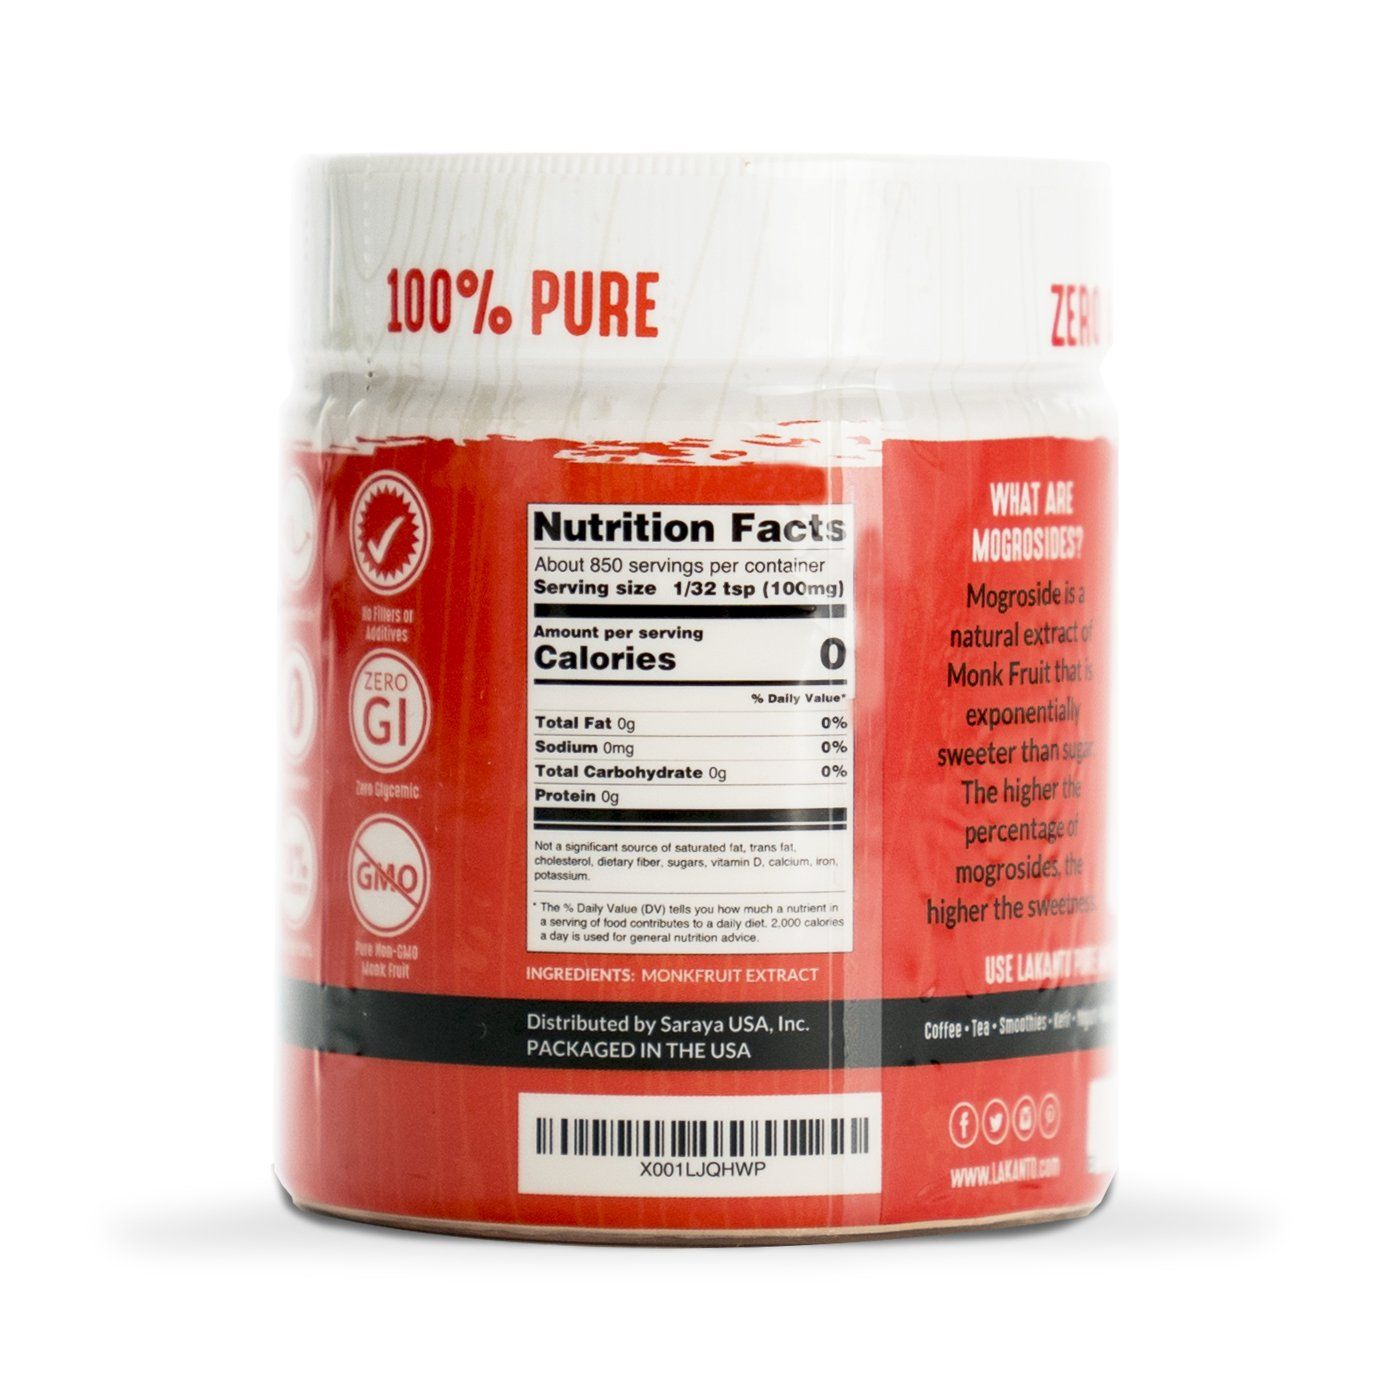 Pure Monkfruit 30 Extract Fruit Nutrition Facts Nutrition Facts Fruit